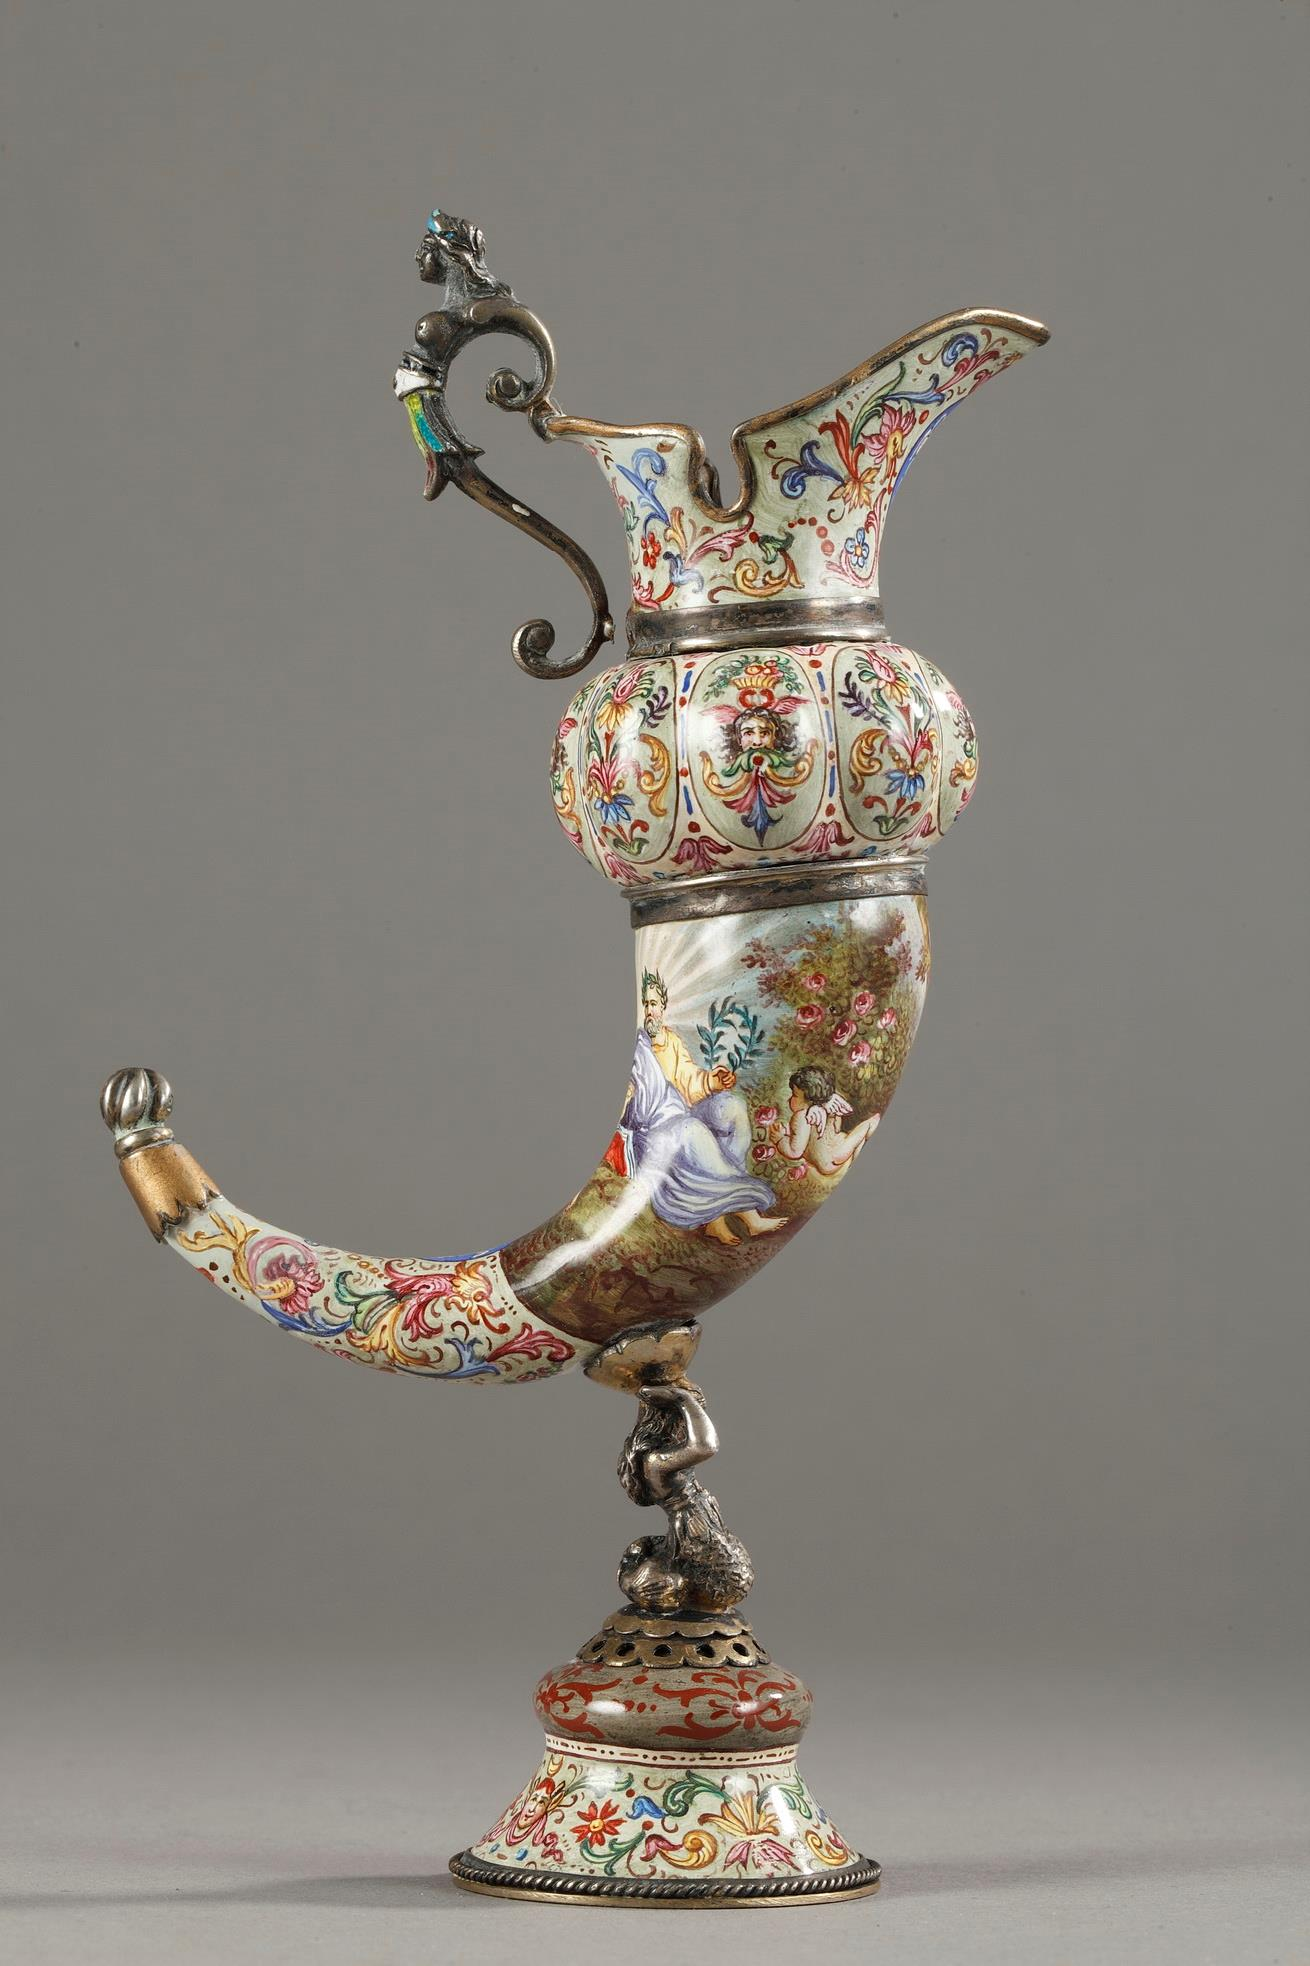 Silver and enamel drinking horn by Rudolf Linke